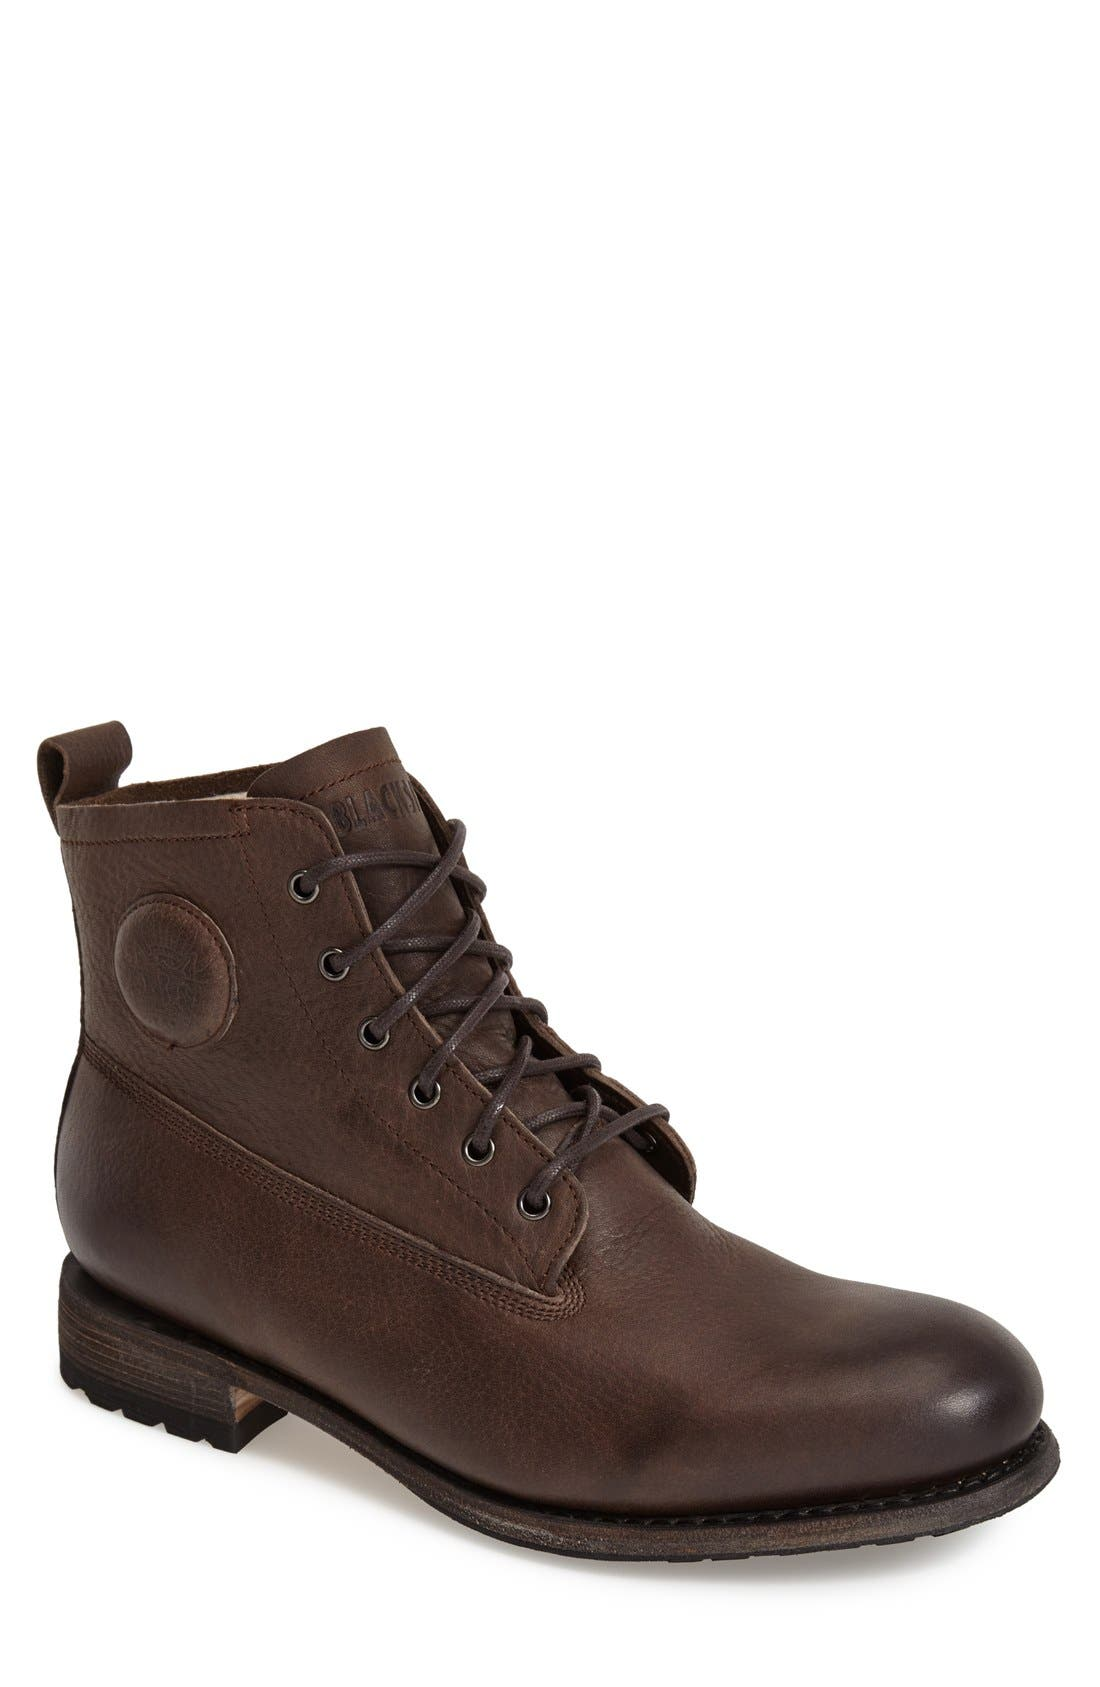 Main Image - Blackstone 'Gull' Plain Toe Boot (Men)